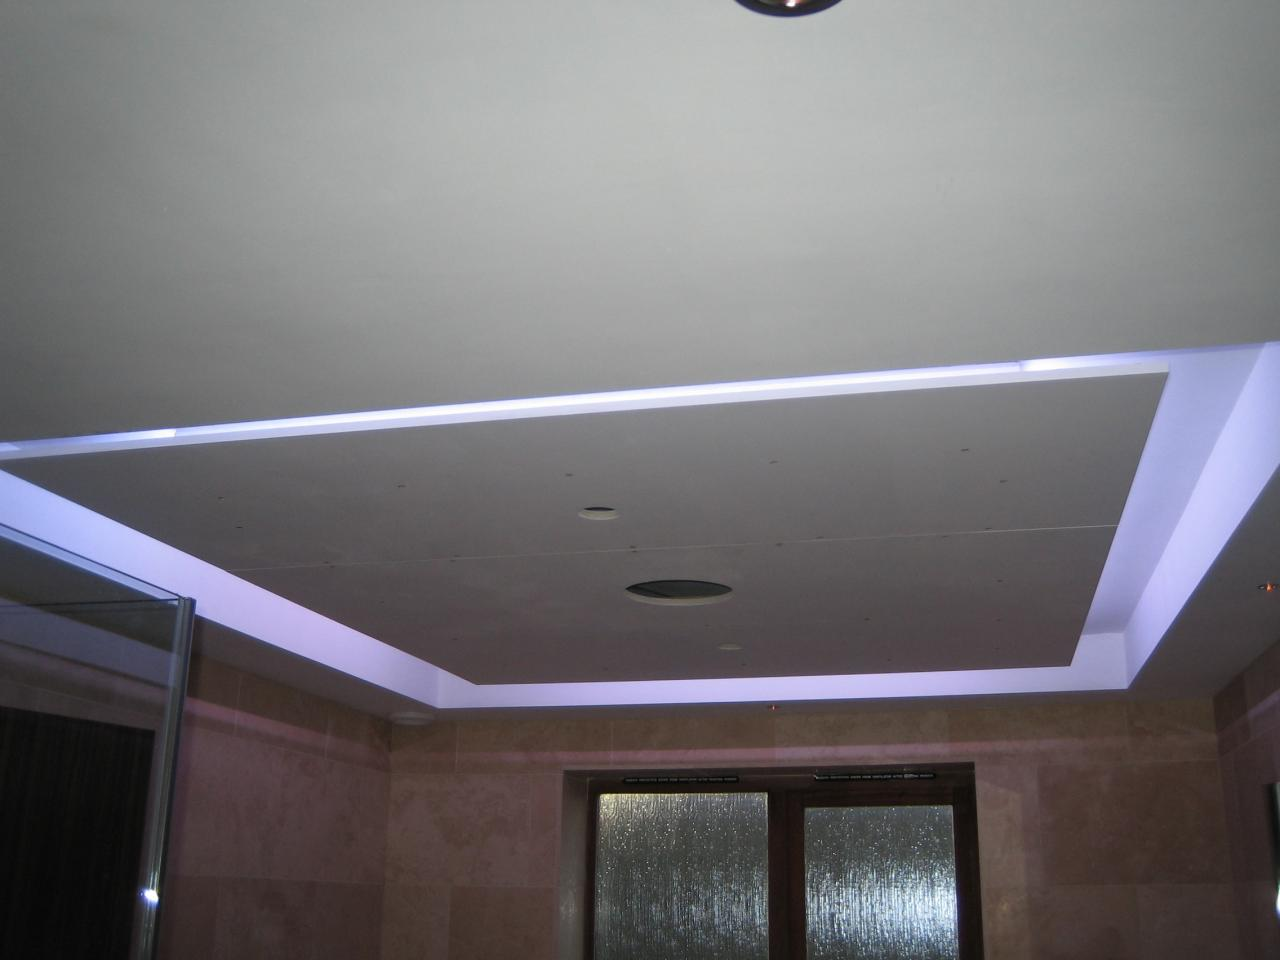 Led suspended ceiling lights tips for buyers warisan lighting - Lights used in false ceiling ...